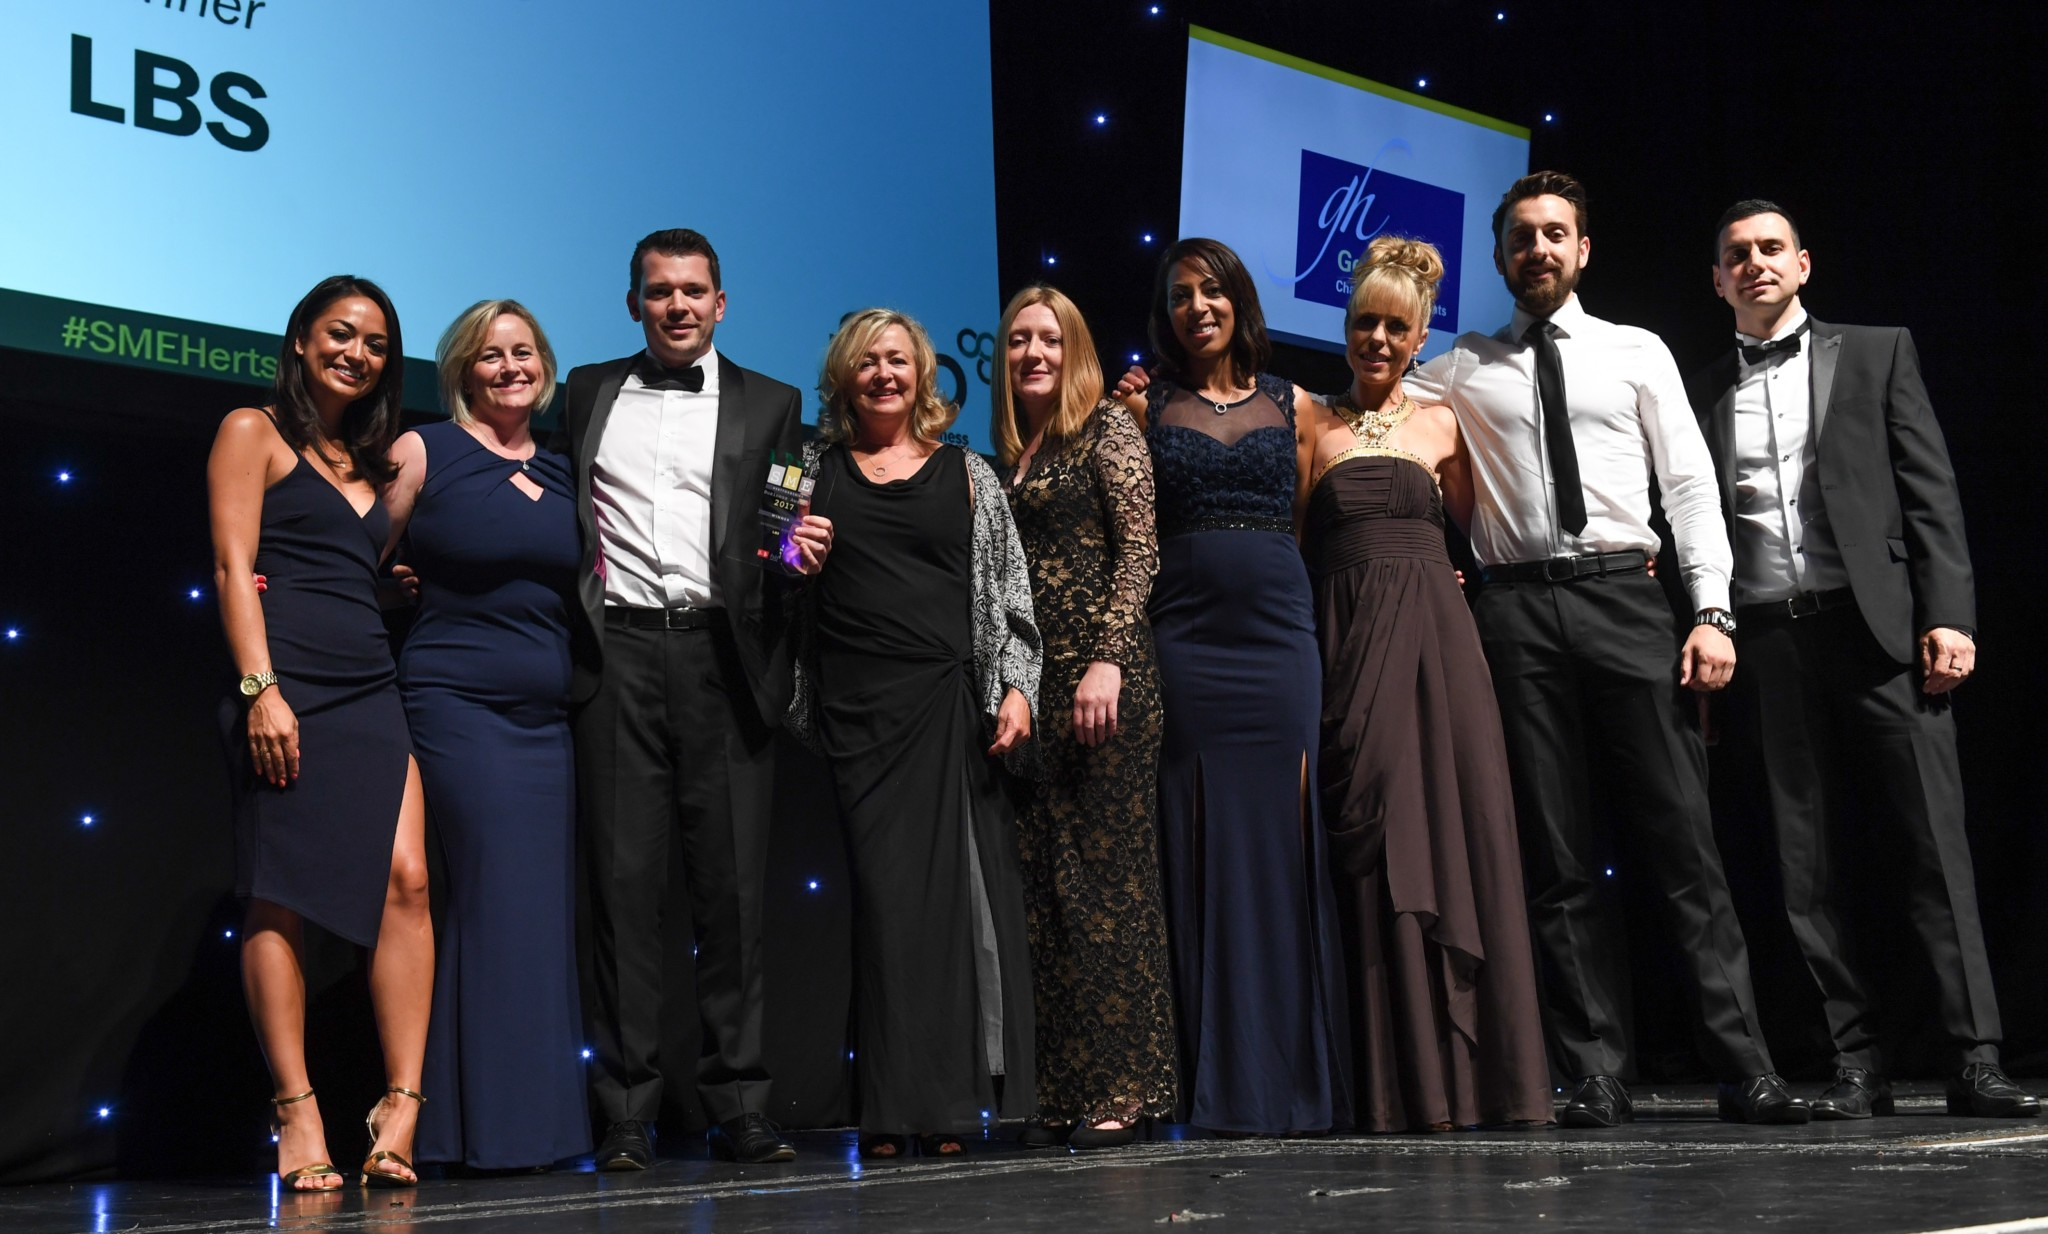 Herts Business Of the Year